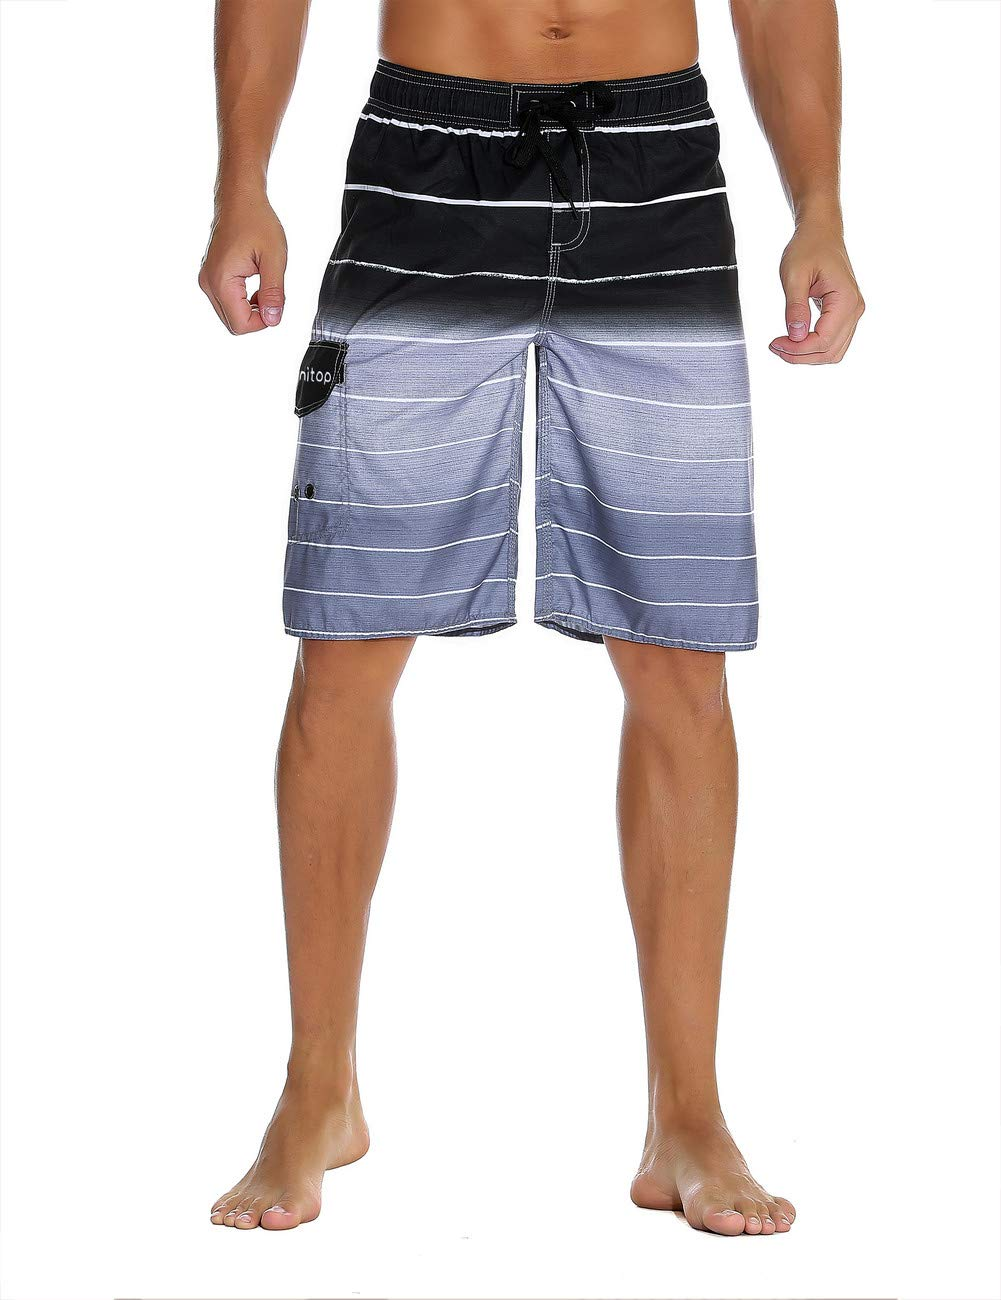 Unitop Men's Colortful Striped Swim Trunks Beach Board Shorts with Lining UT16143